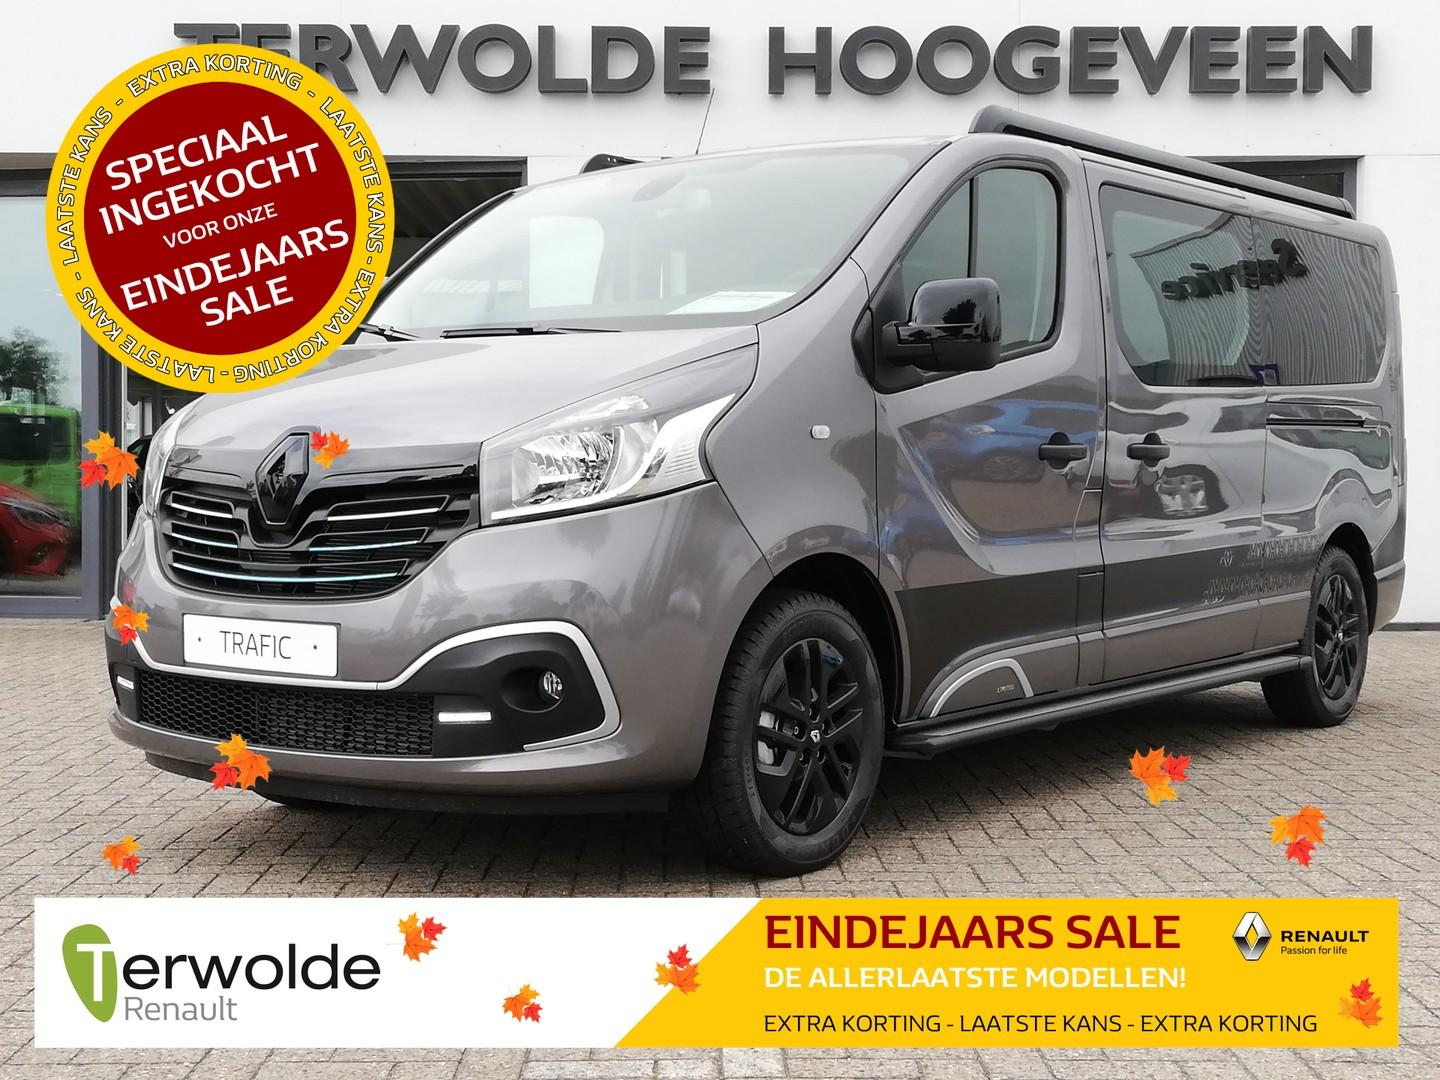 Renault Trafic 1.6dci 145pk twinturbo nedc t29 l2h1 dc limited €11.640,- korting! 29%! financial lease 0%! uit voorraad!